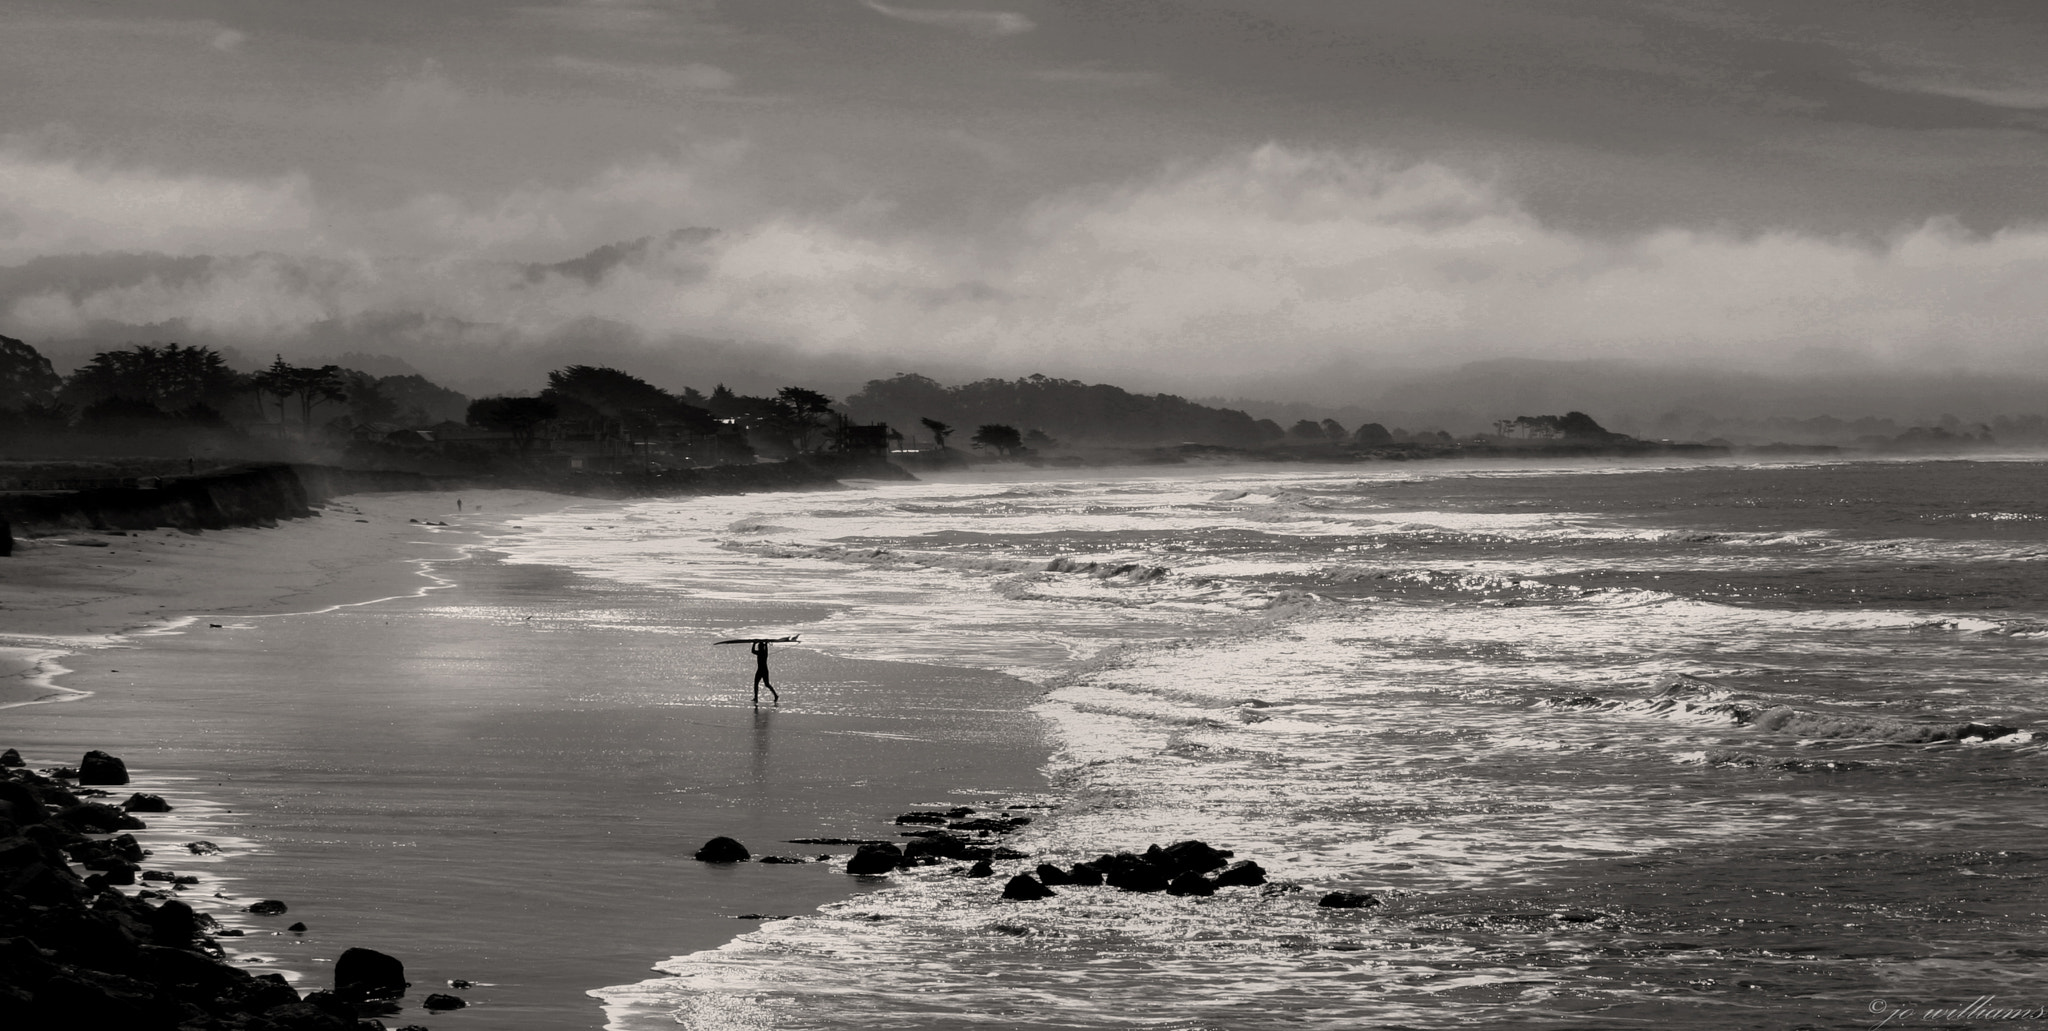 Photograph The Surfer by jo williams on 500px